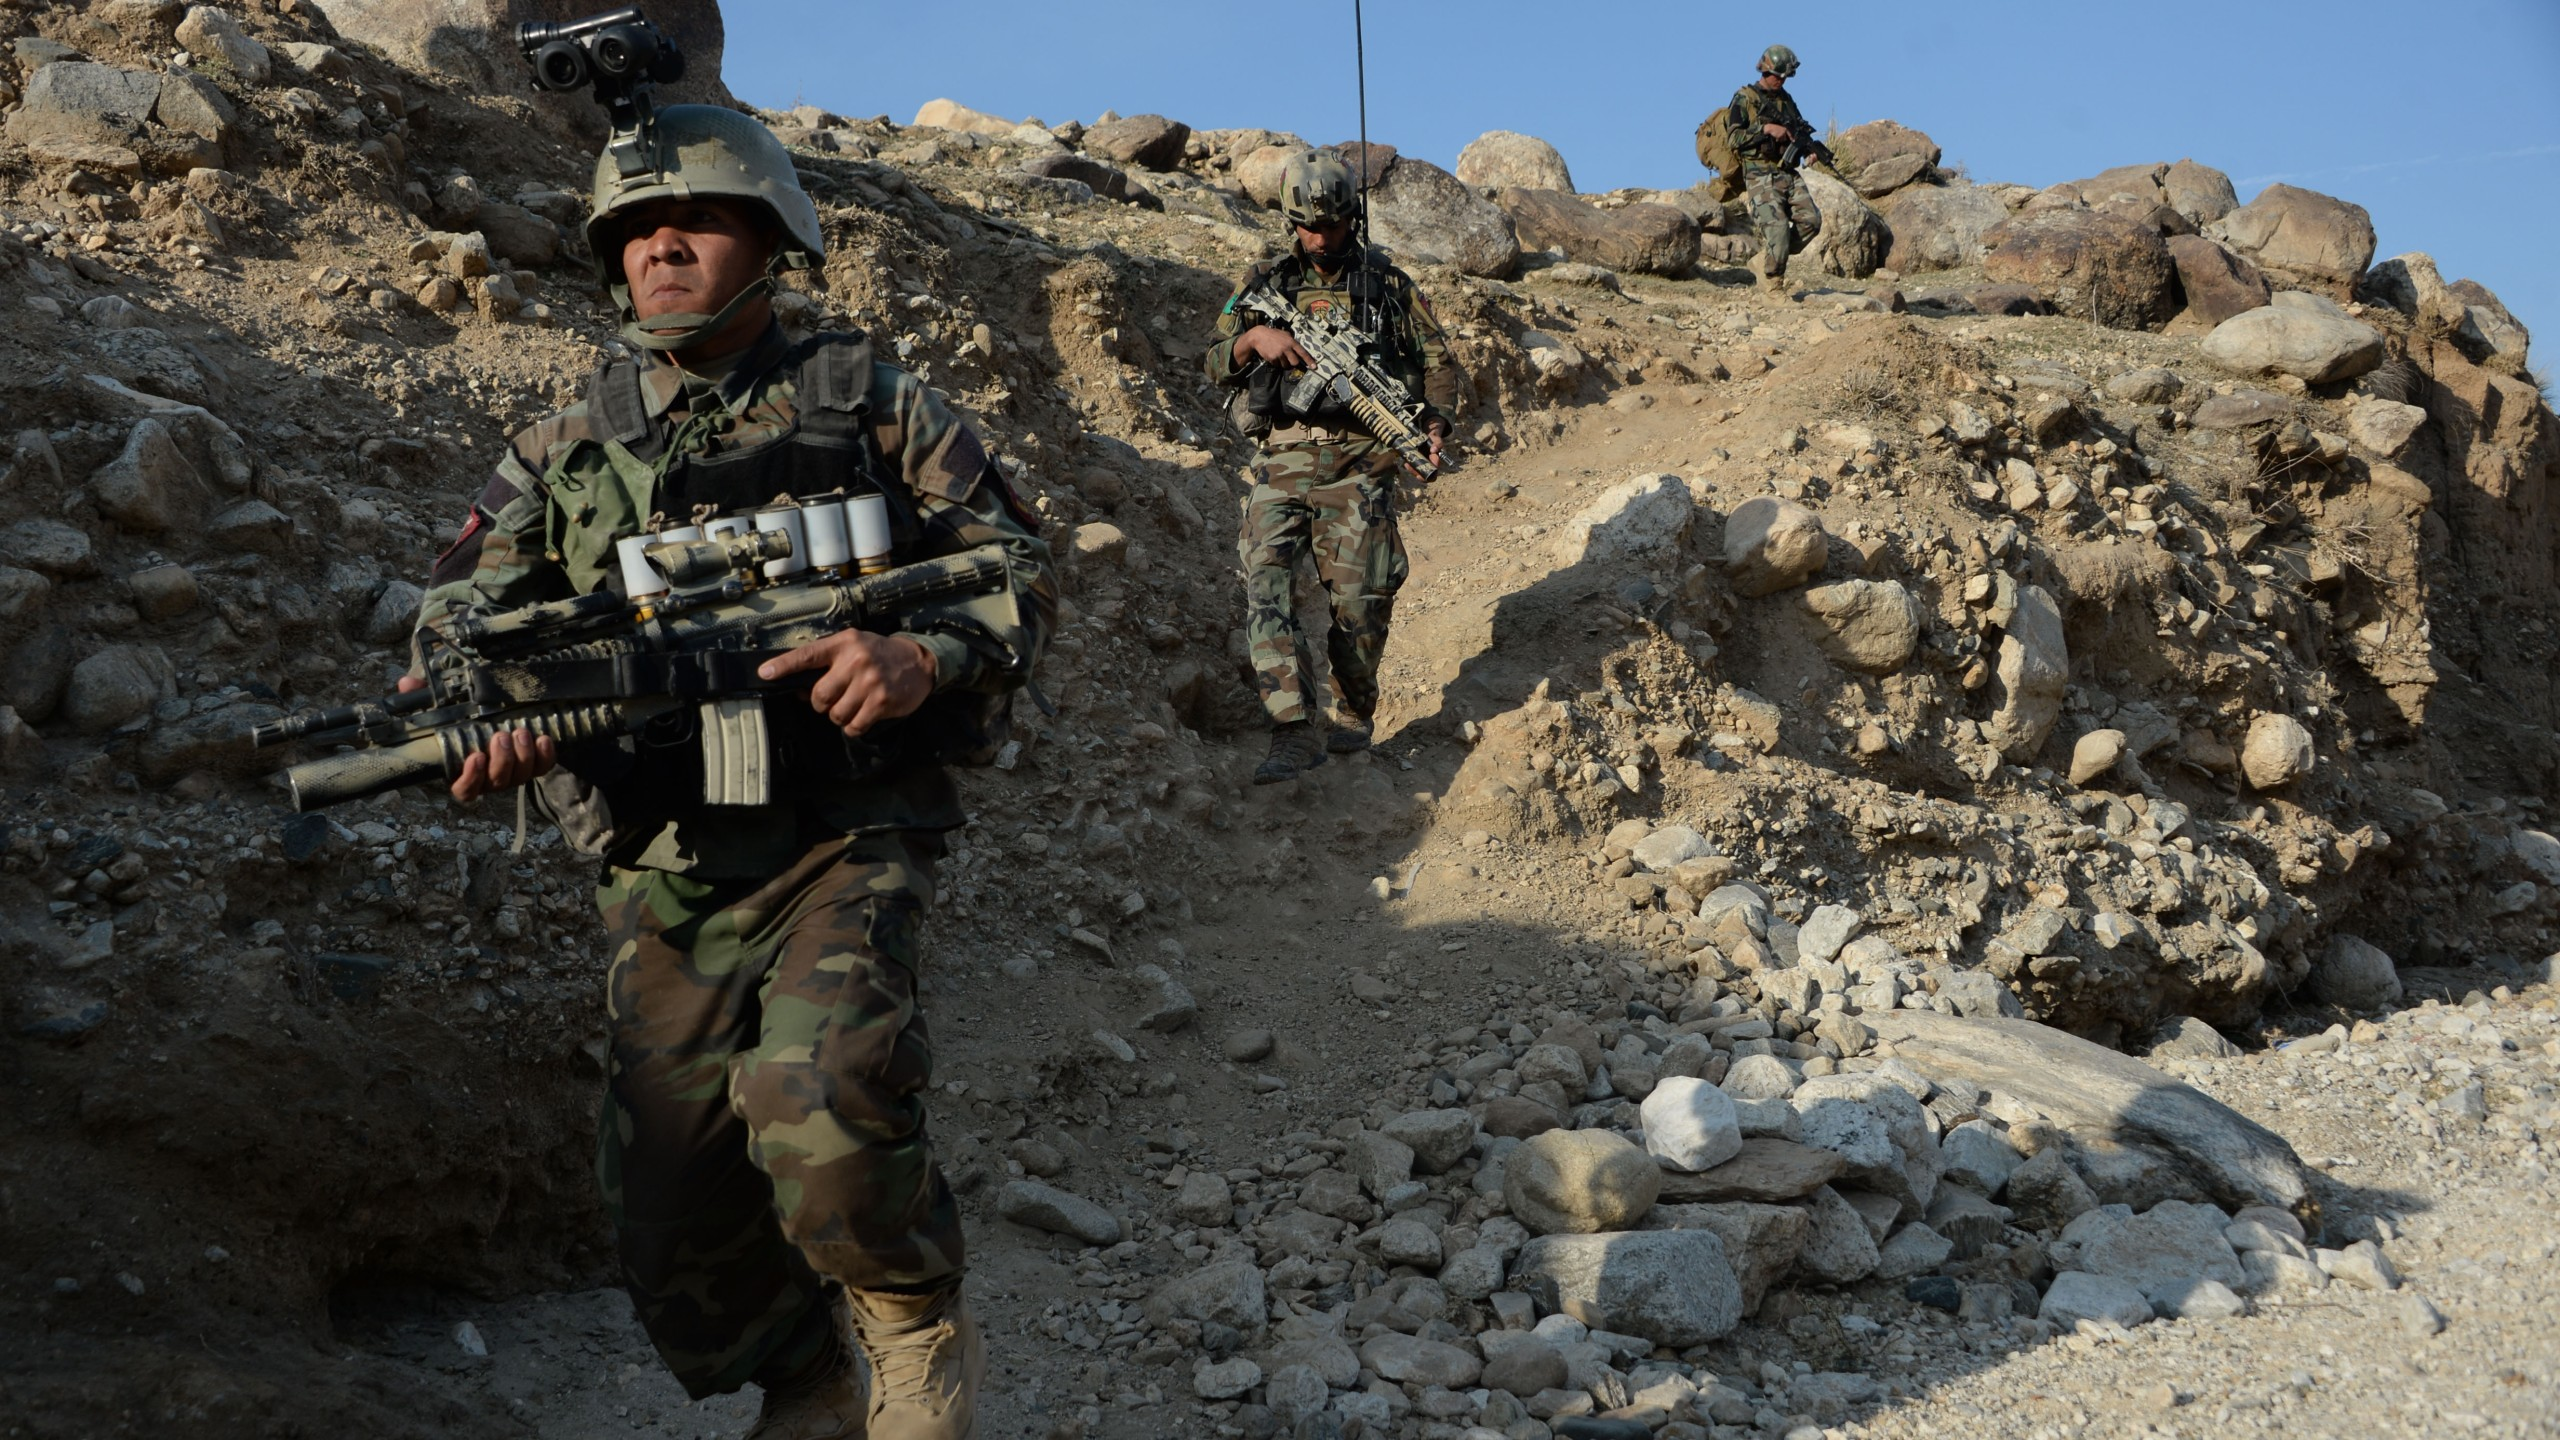 In this photograph taken on January 3, 2018, Afghan commandos forces patrol during ongoing U.S.-Afghan military operation against Islamic State militants in Achin district of Nangarhar province. (Credit: NOORULLAH SHIRZADA/AFP/Getty Images)